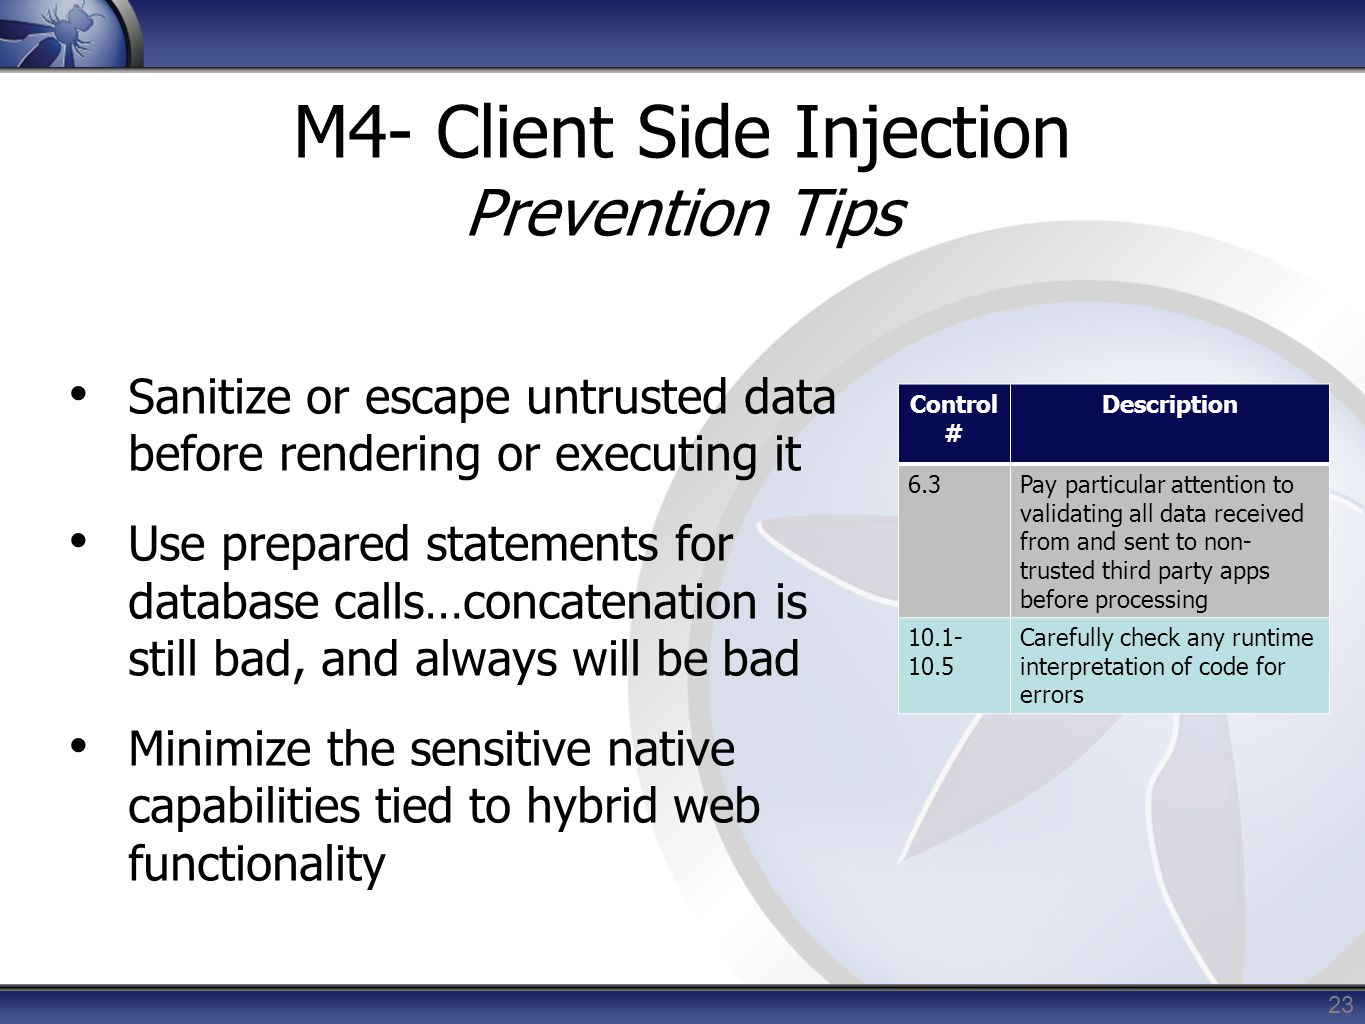 M4- Client Side Injection Prevention Tips